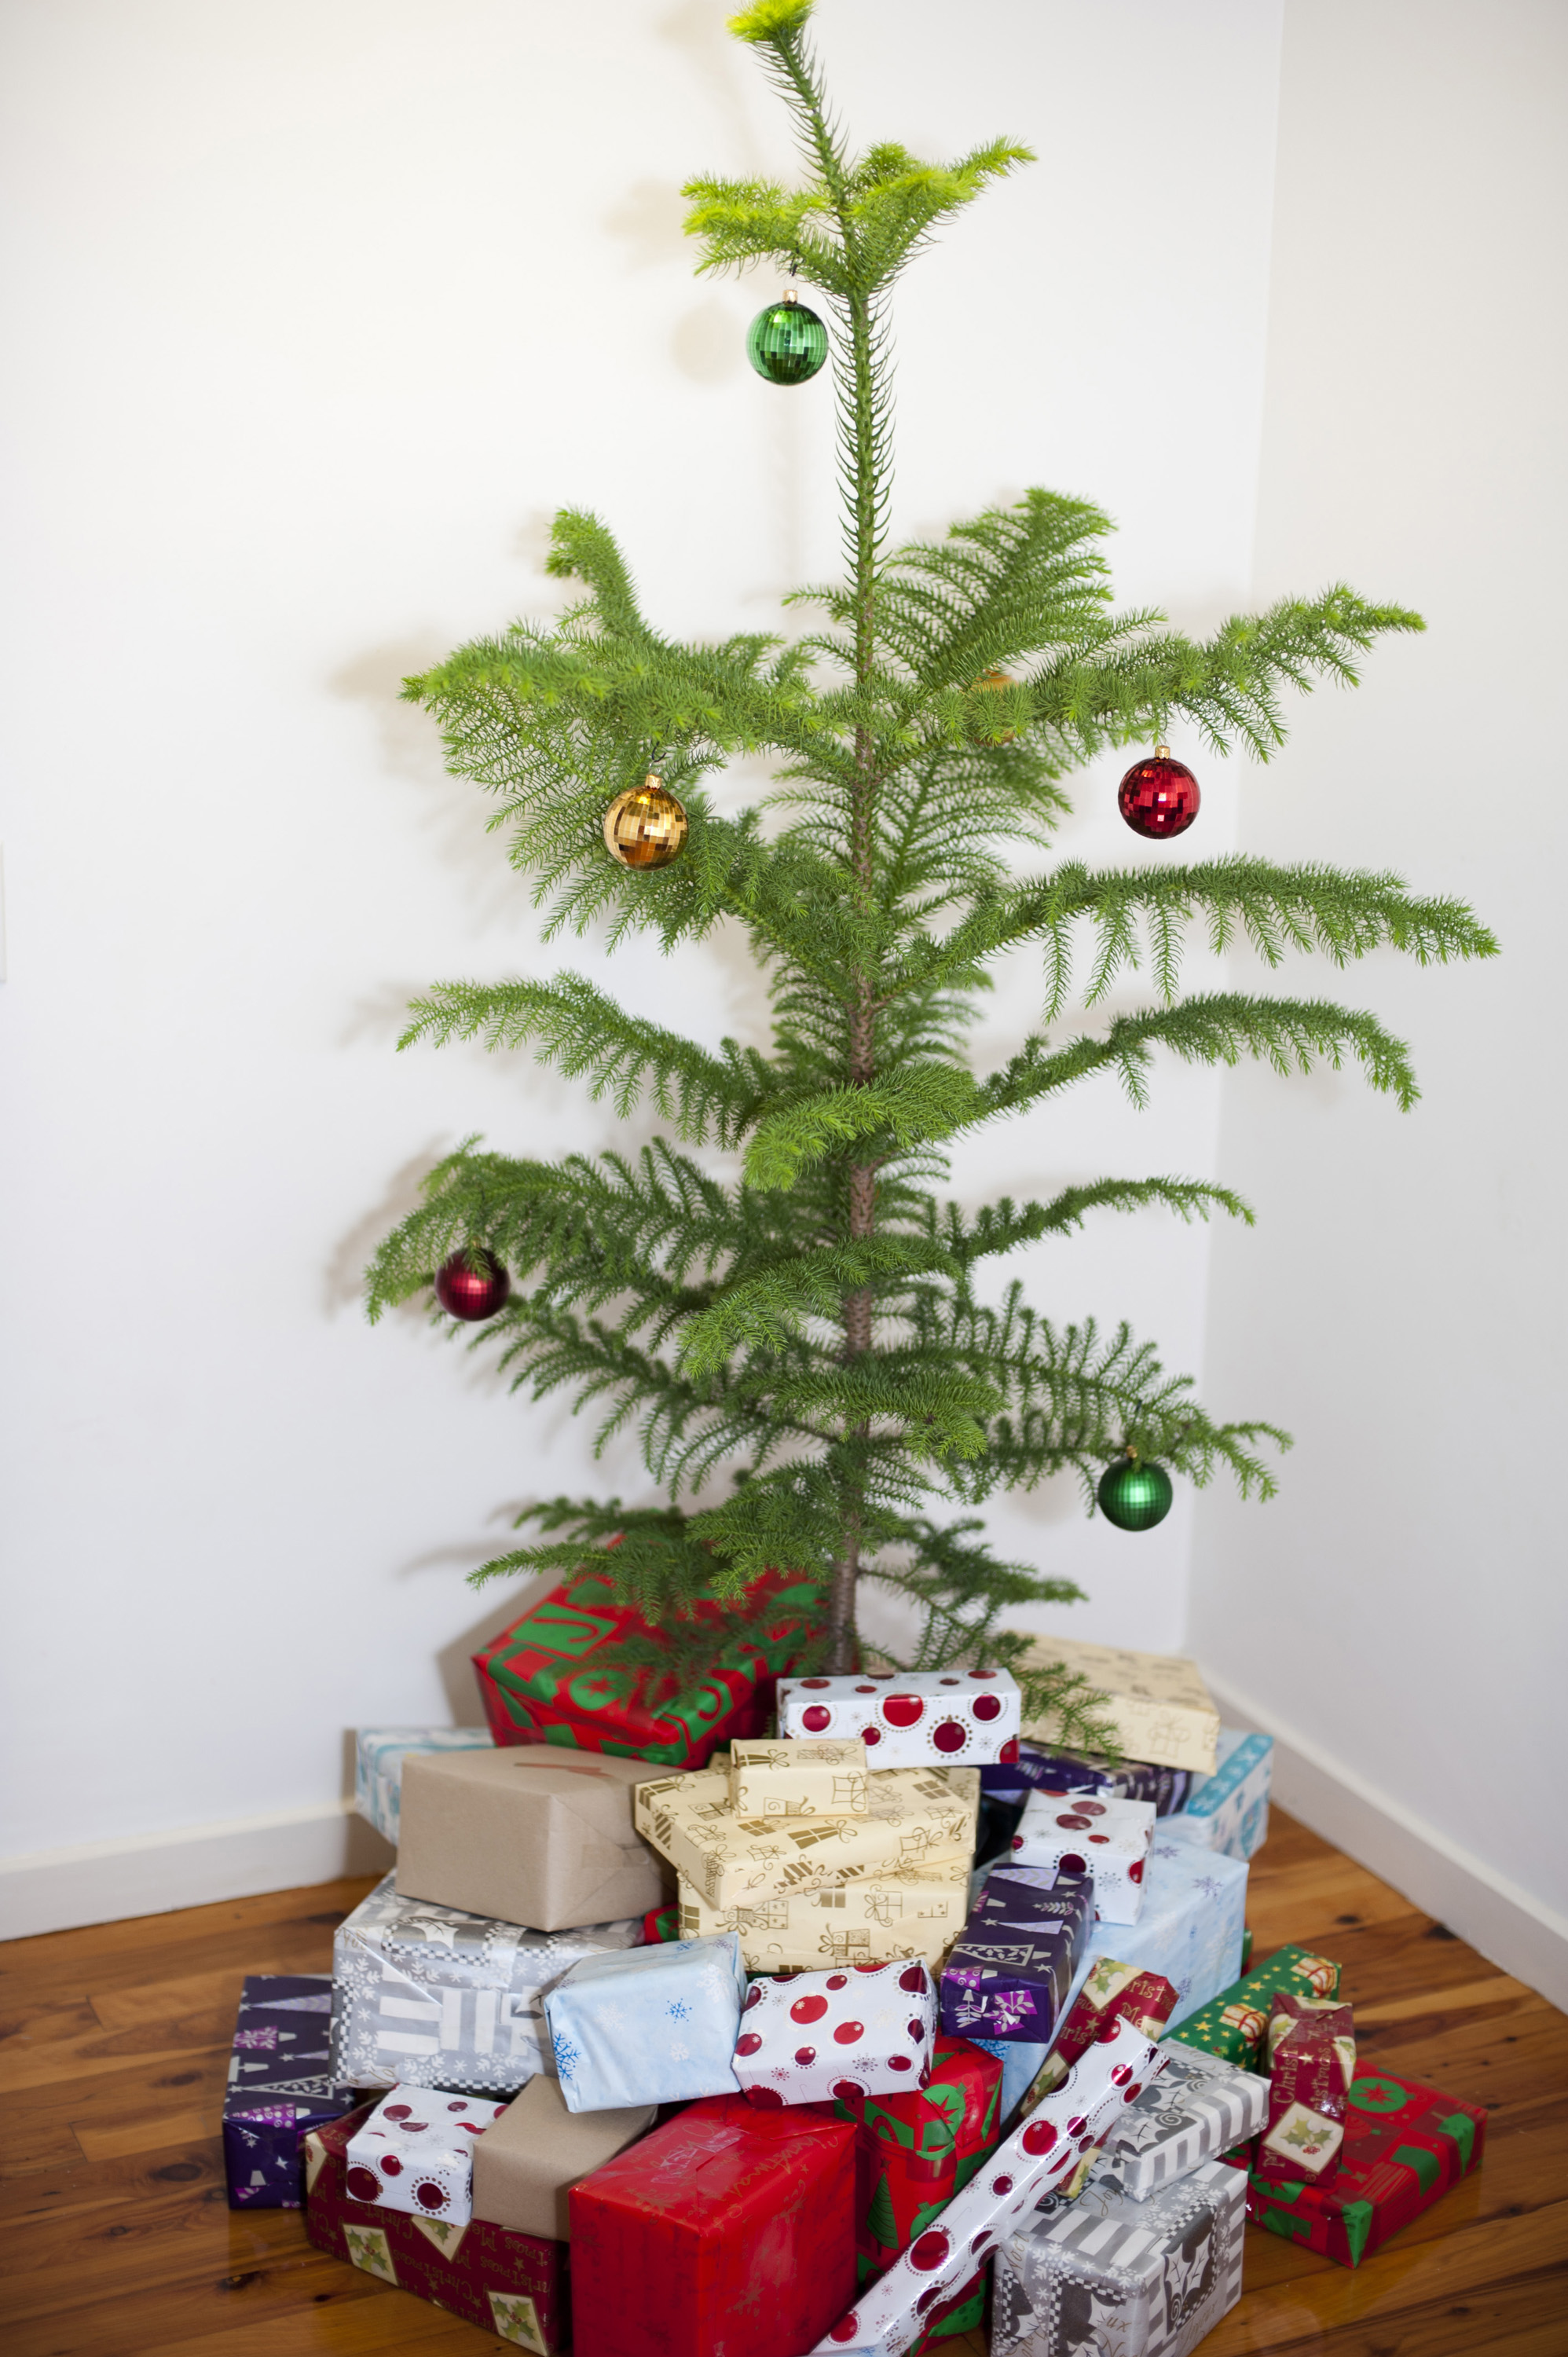 Decorated evergreen natural pine Christmas tree surrounded with colourful presents gift-wrapped in pretty patterned paper